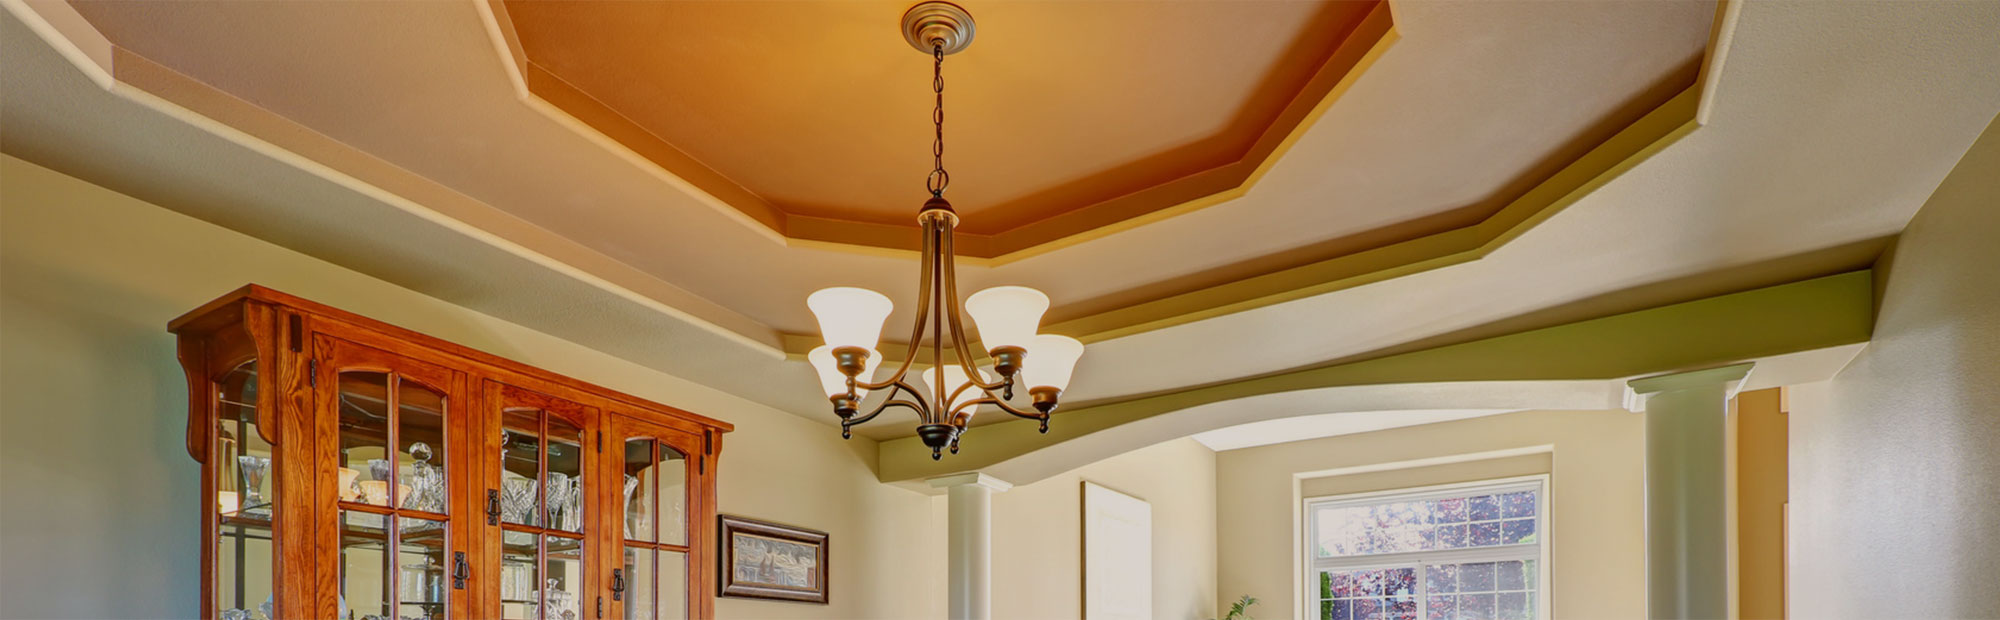 ceiling installers Perth - ceiling replacement cost - ceiling replacement perth - ceiling repairment